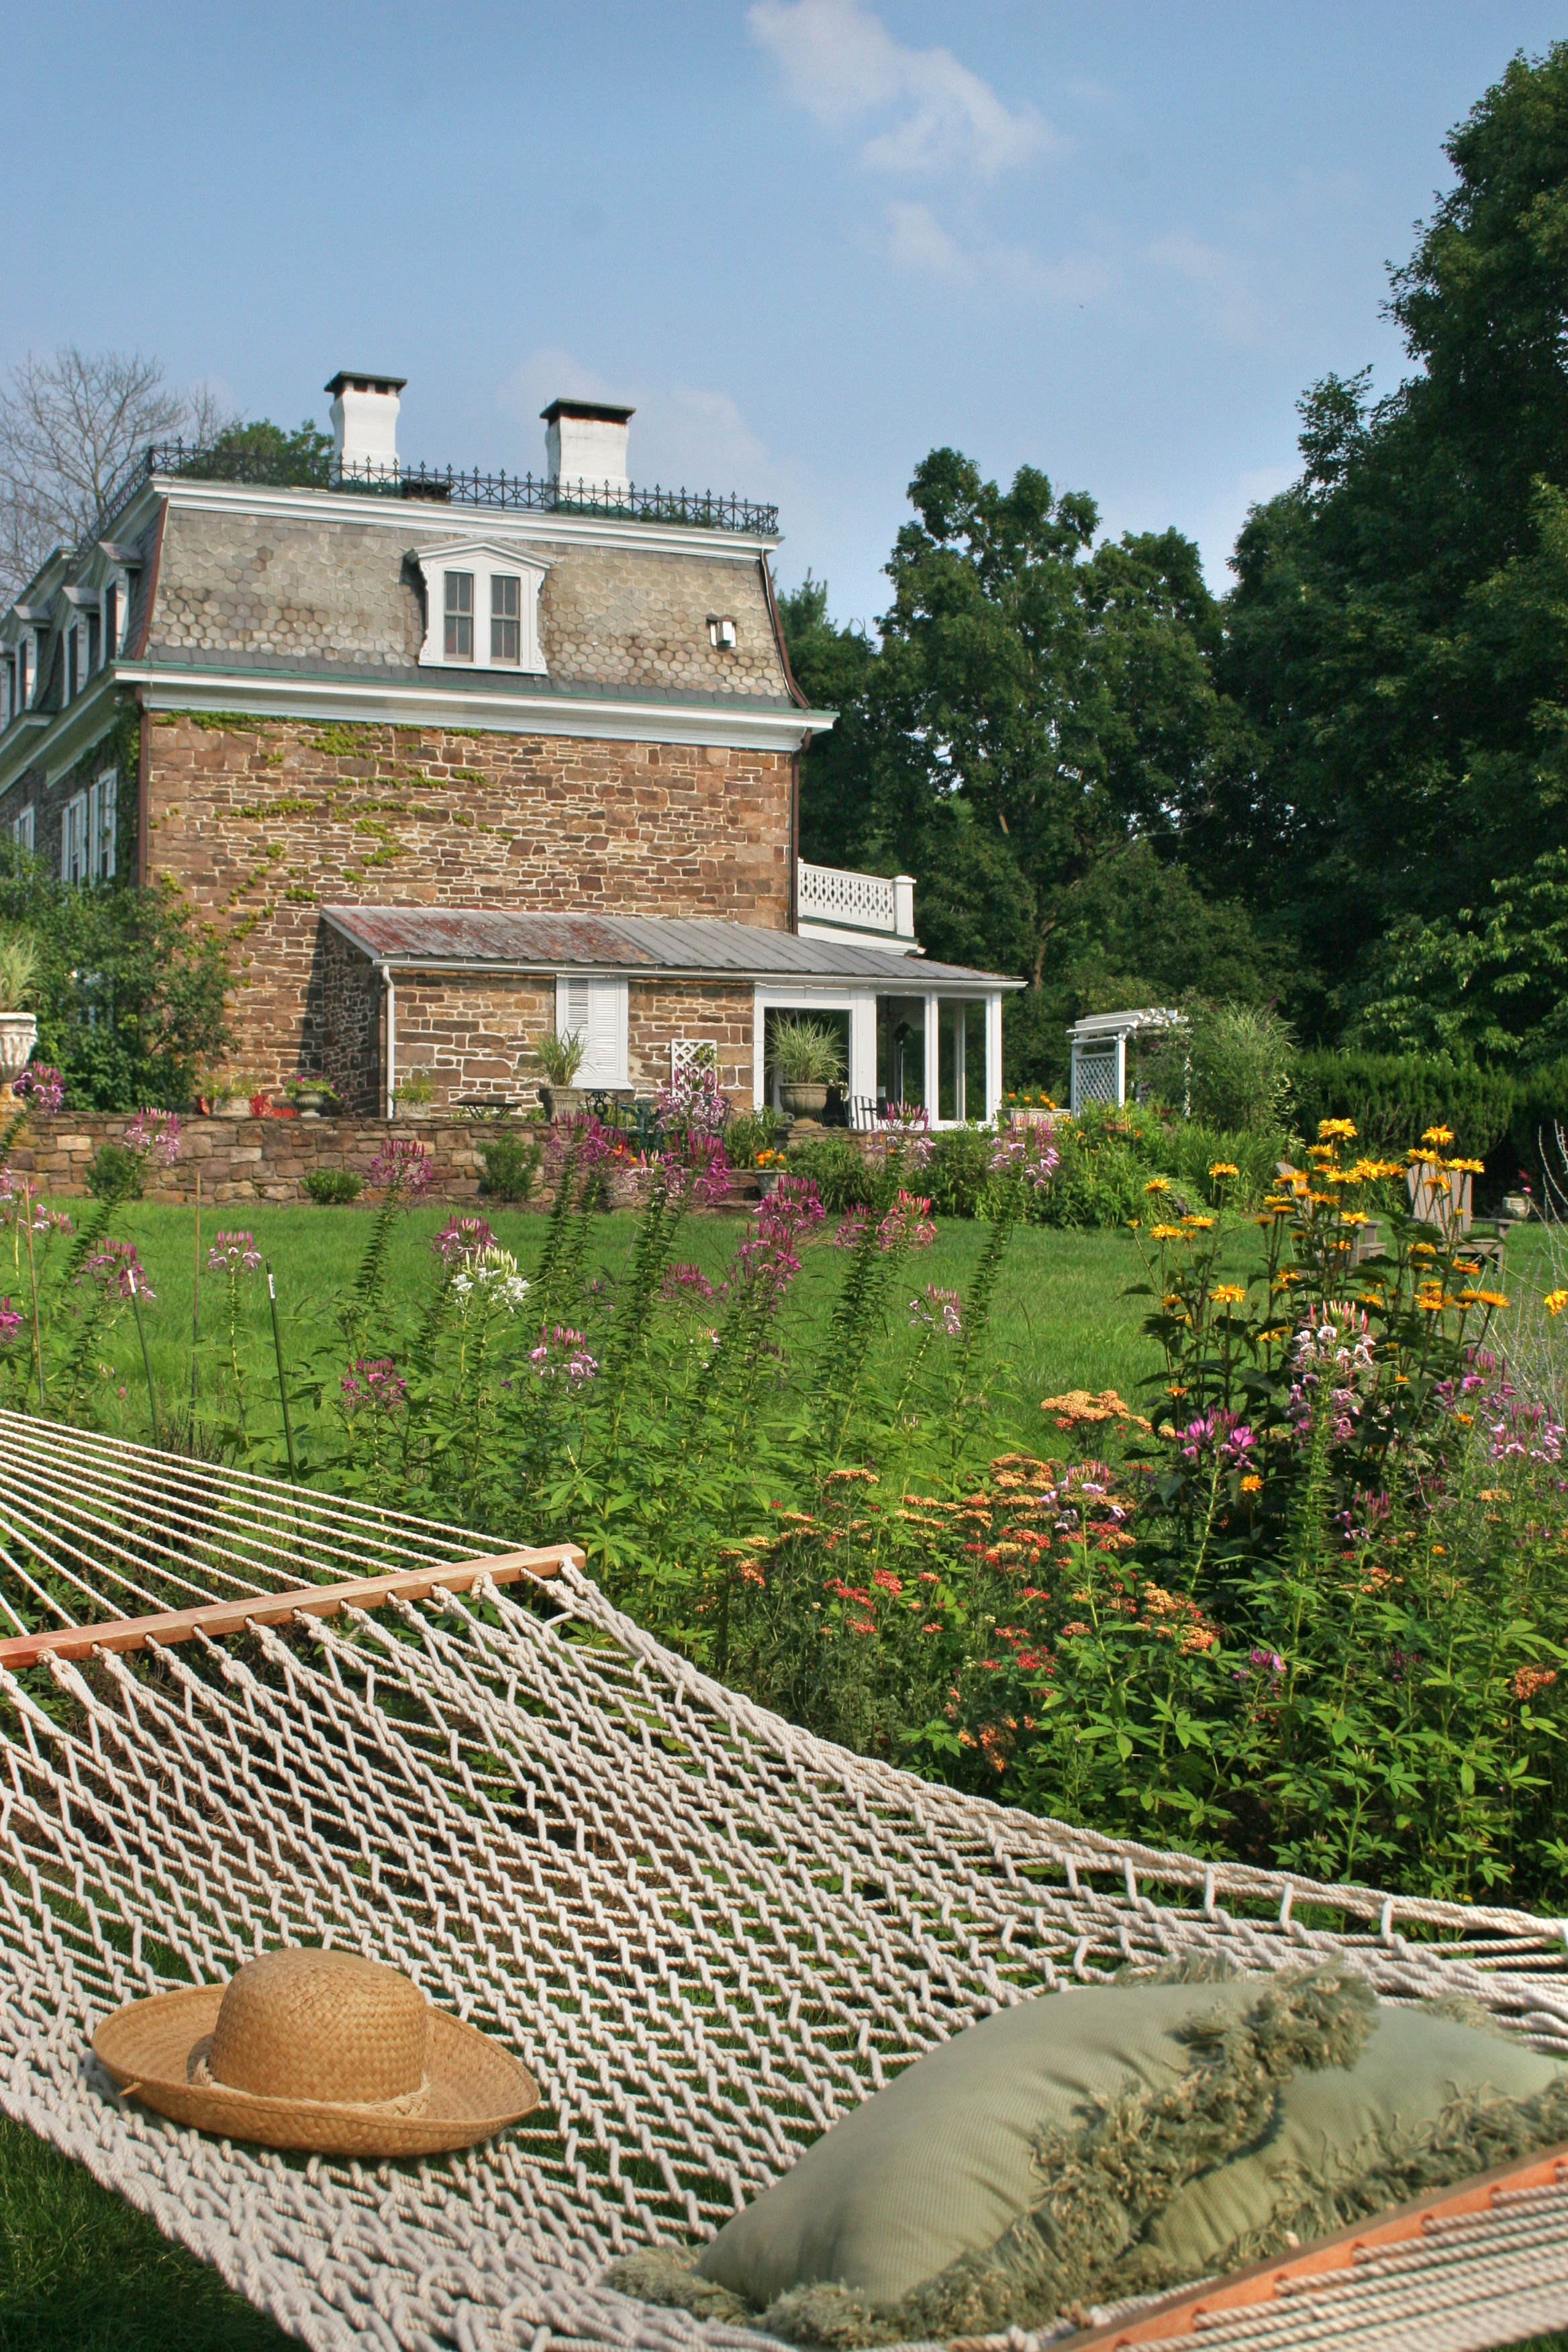 Come enjoy the warm summer at the Woolverton Inn near New